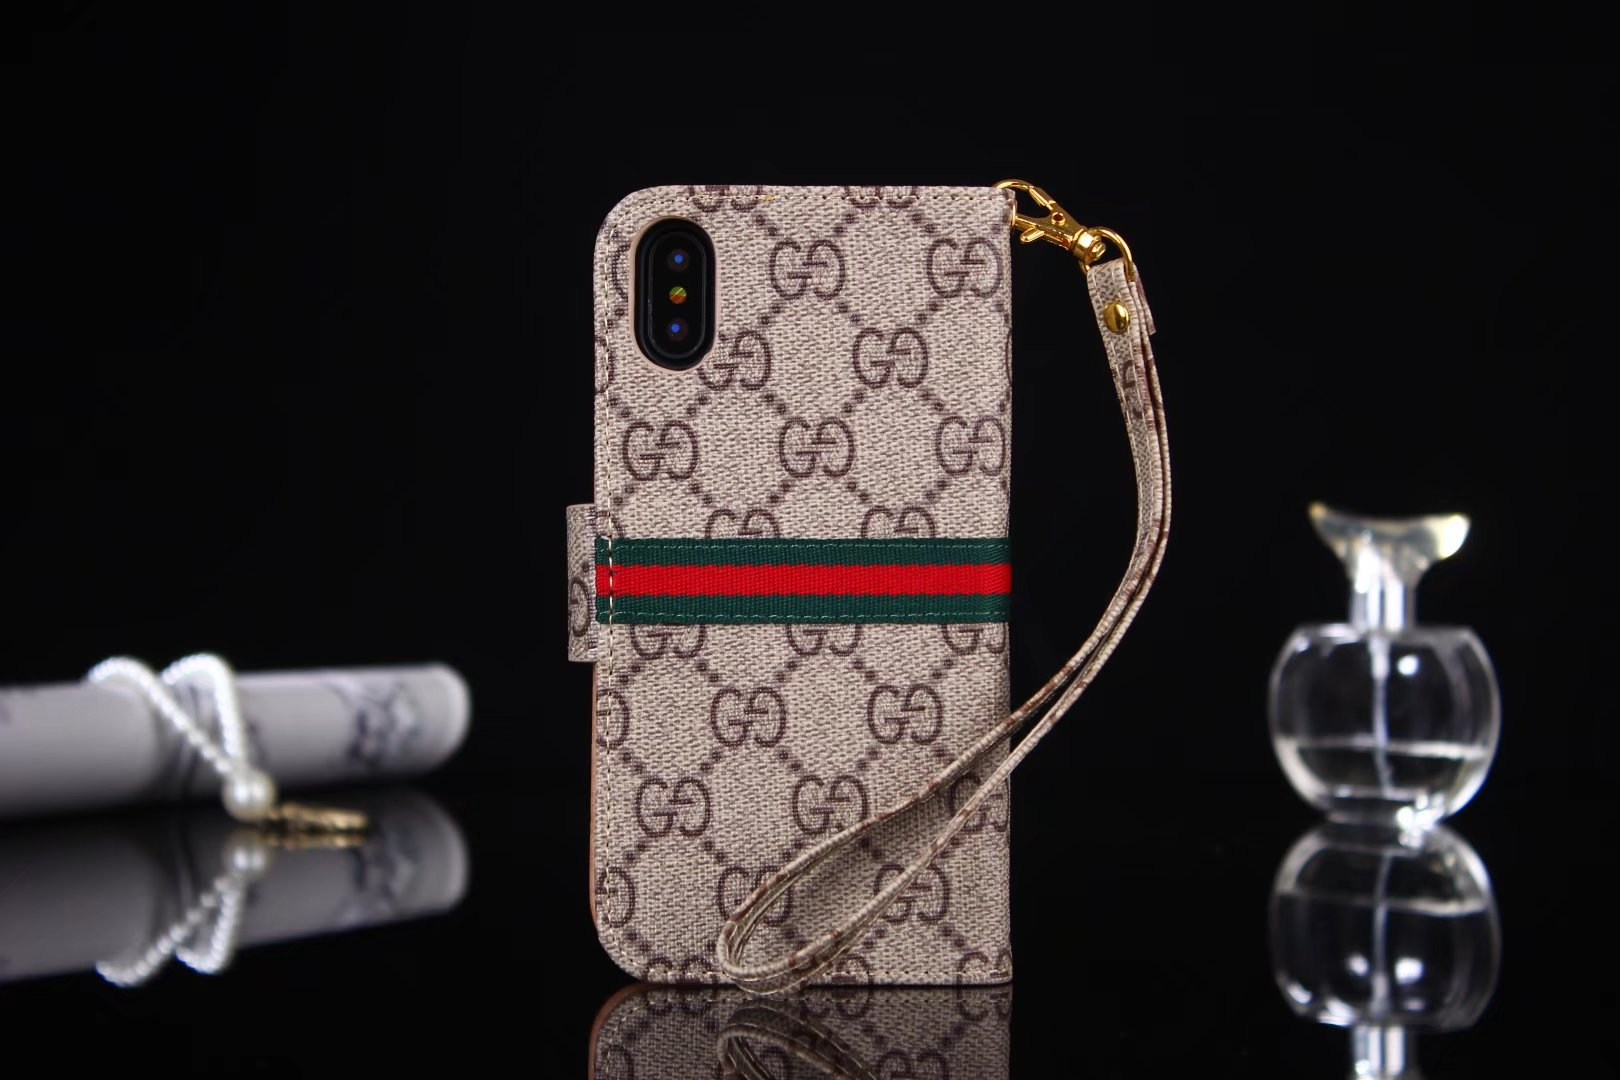 iphone X cases cool designs cool phone cases for iphone X Gucci iPhone X case iphone 6 iphone 6 cover phone cases jucie plus case of iphone 6 iphone 6 case sale two cell phone case